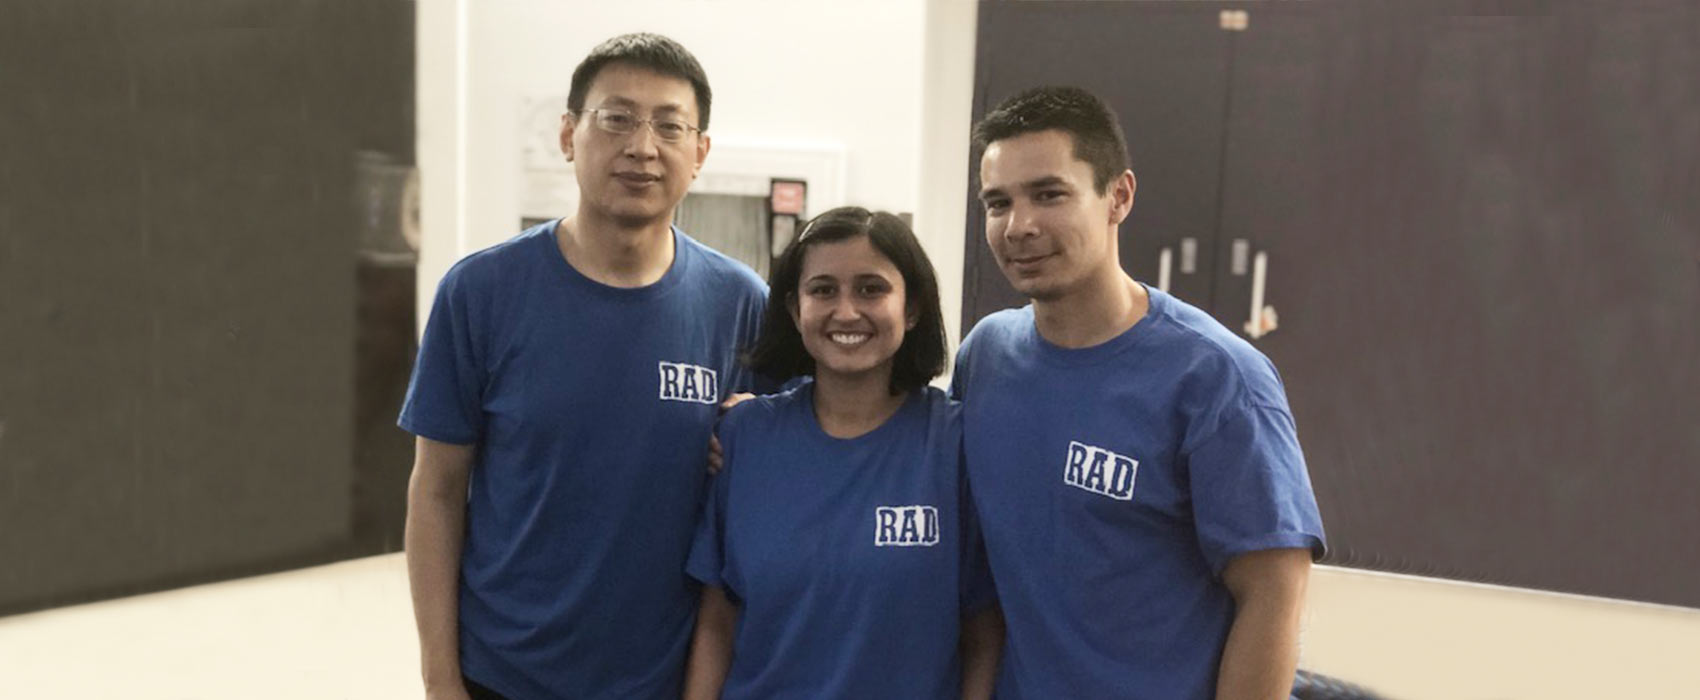 Image for Copperleaf's RAD Initiative Raises Over $2,000 at TechPong 2018